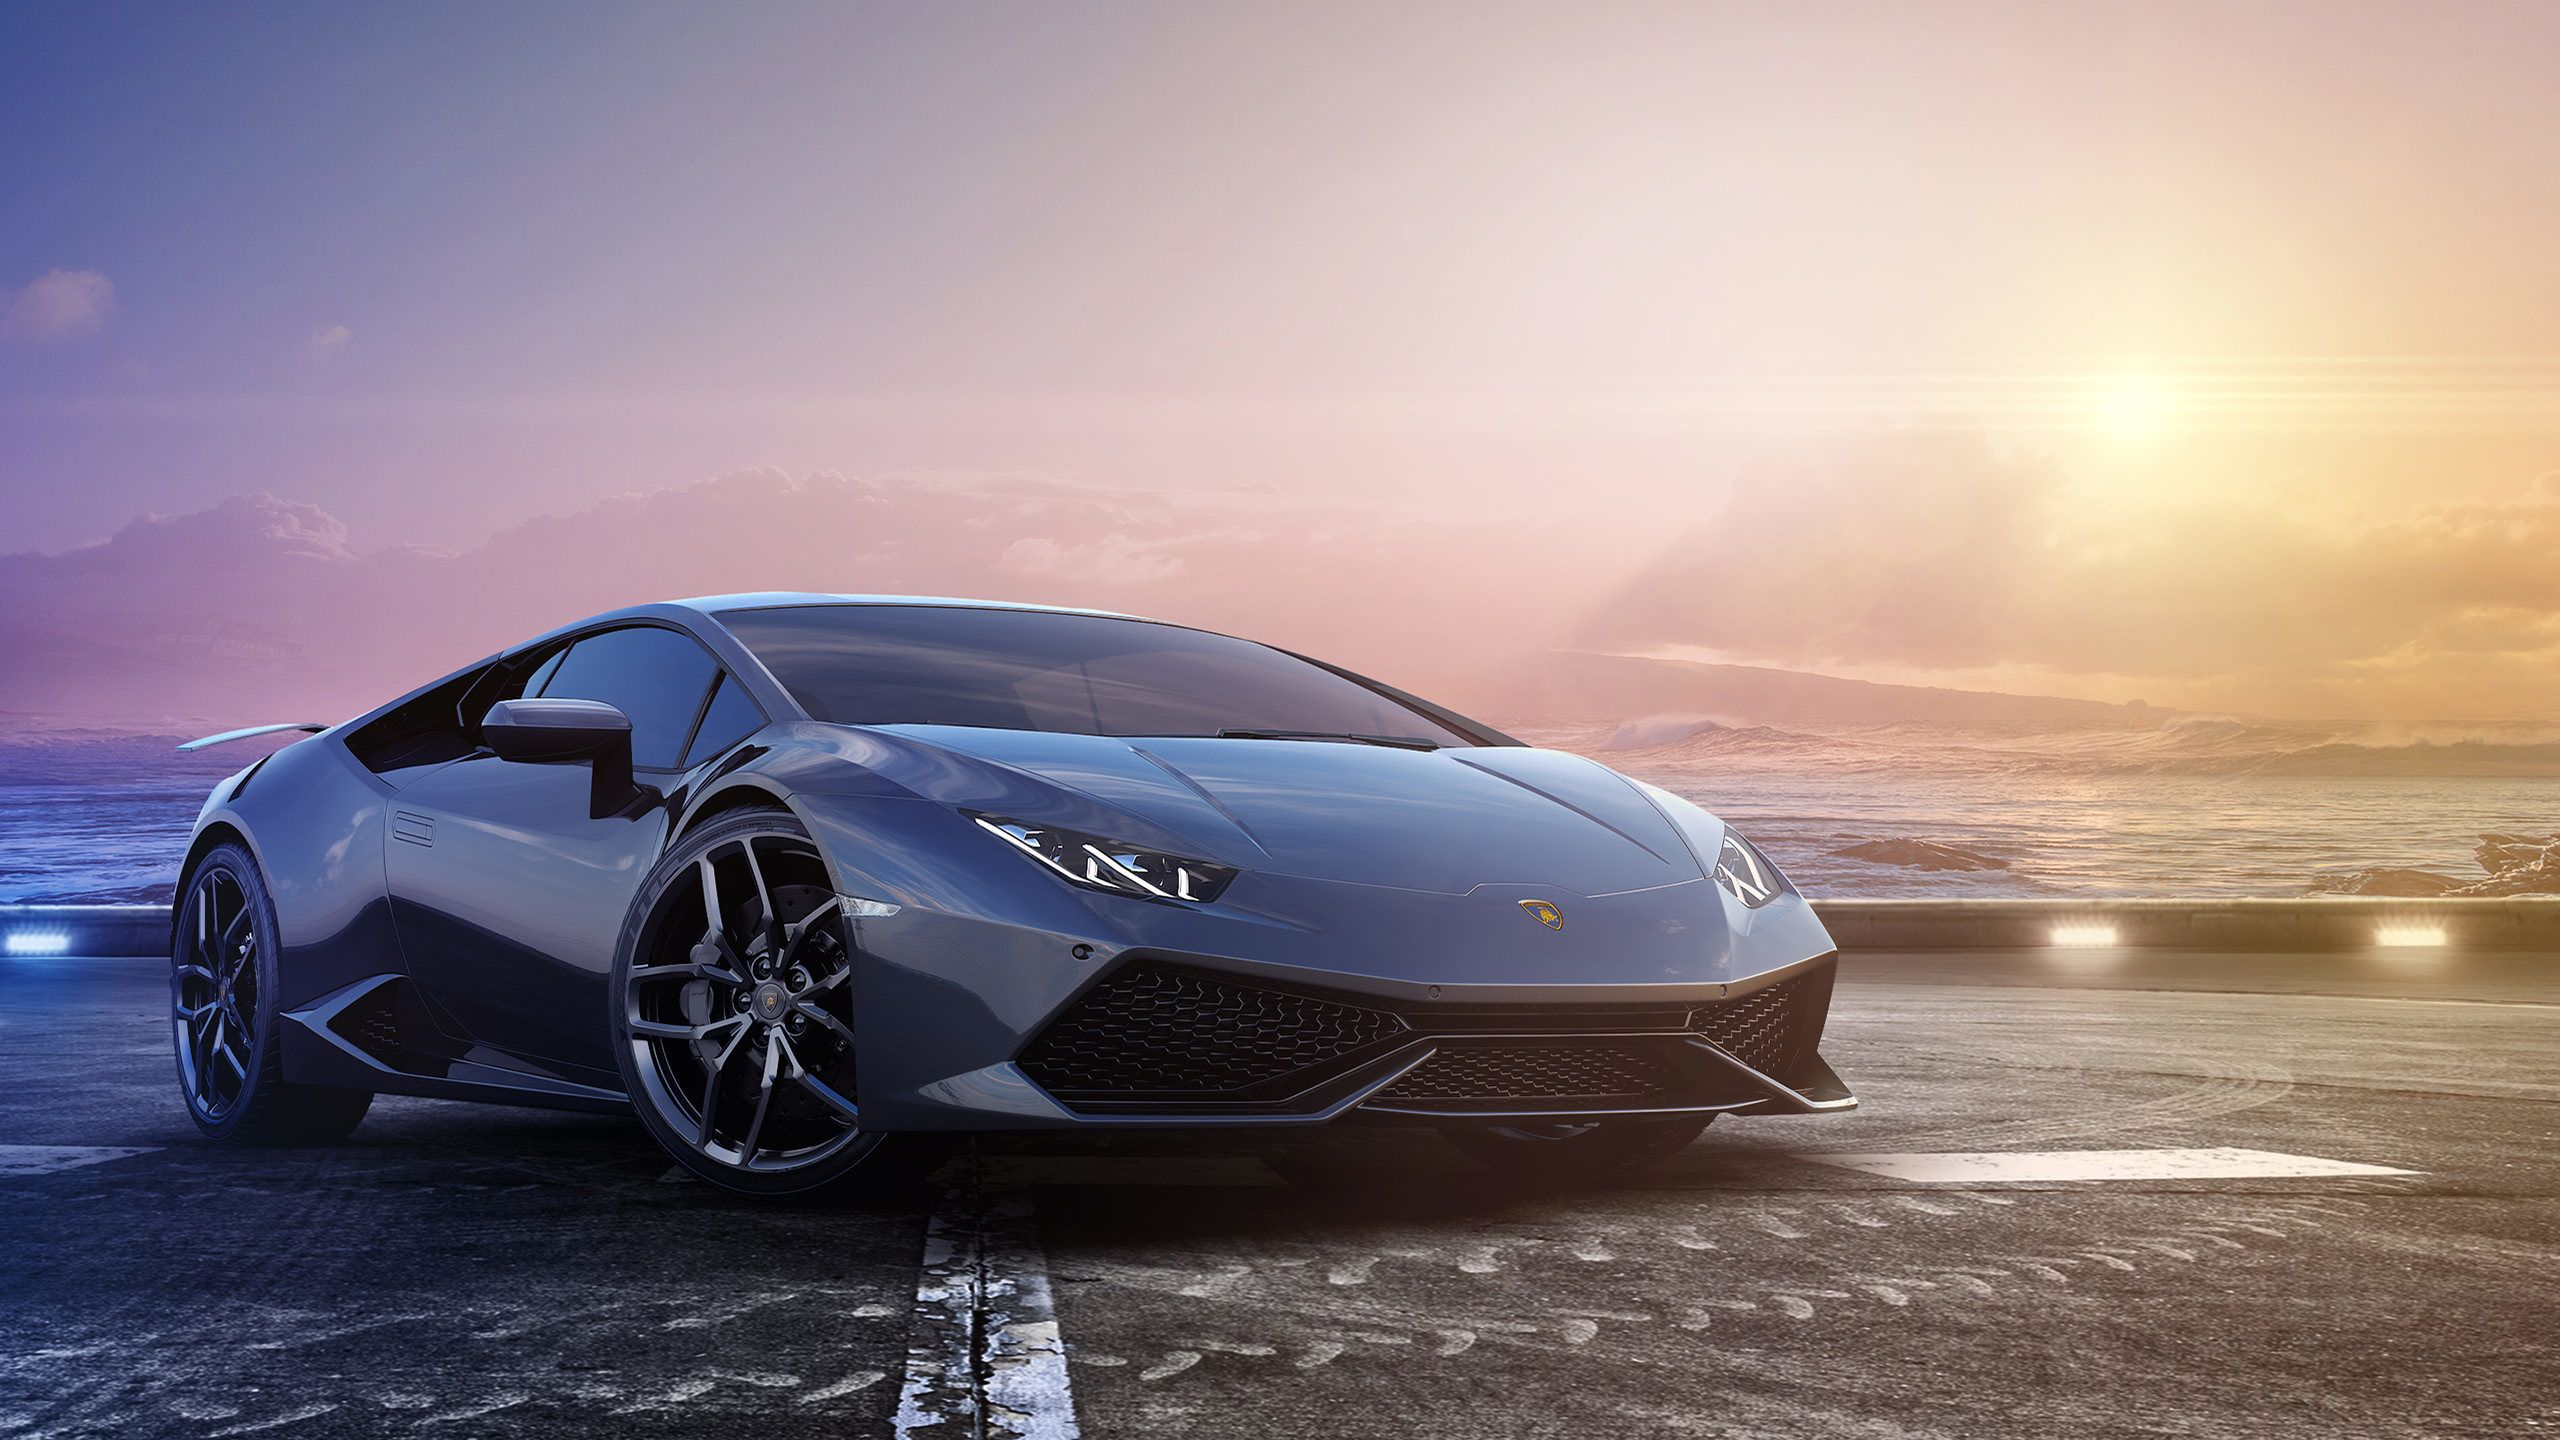 Lamborghini Wallpaper - Wallpaper Ideas